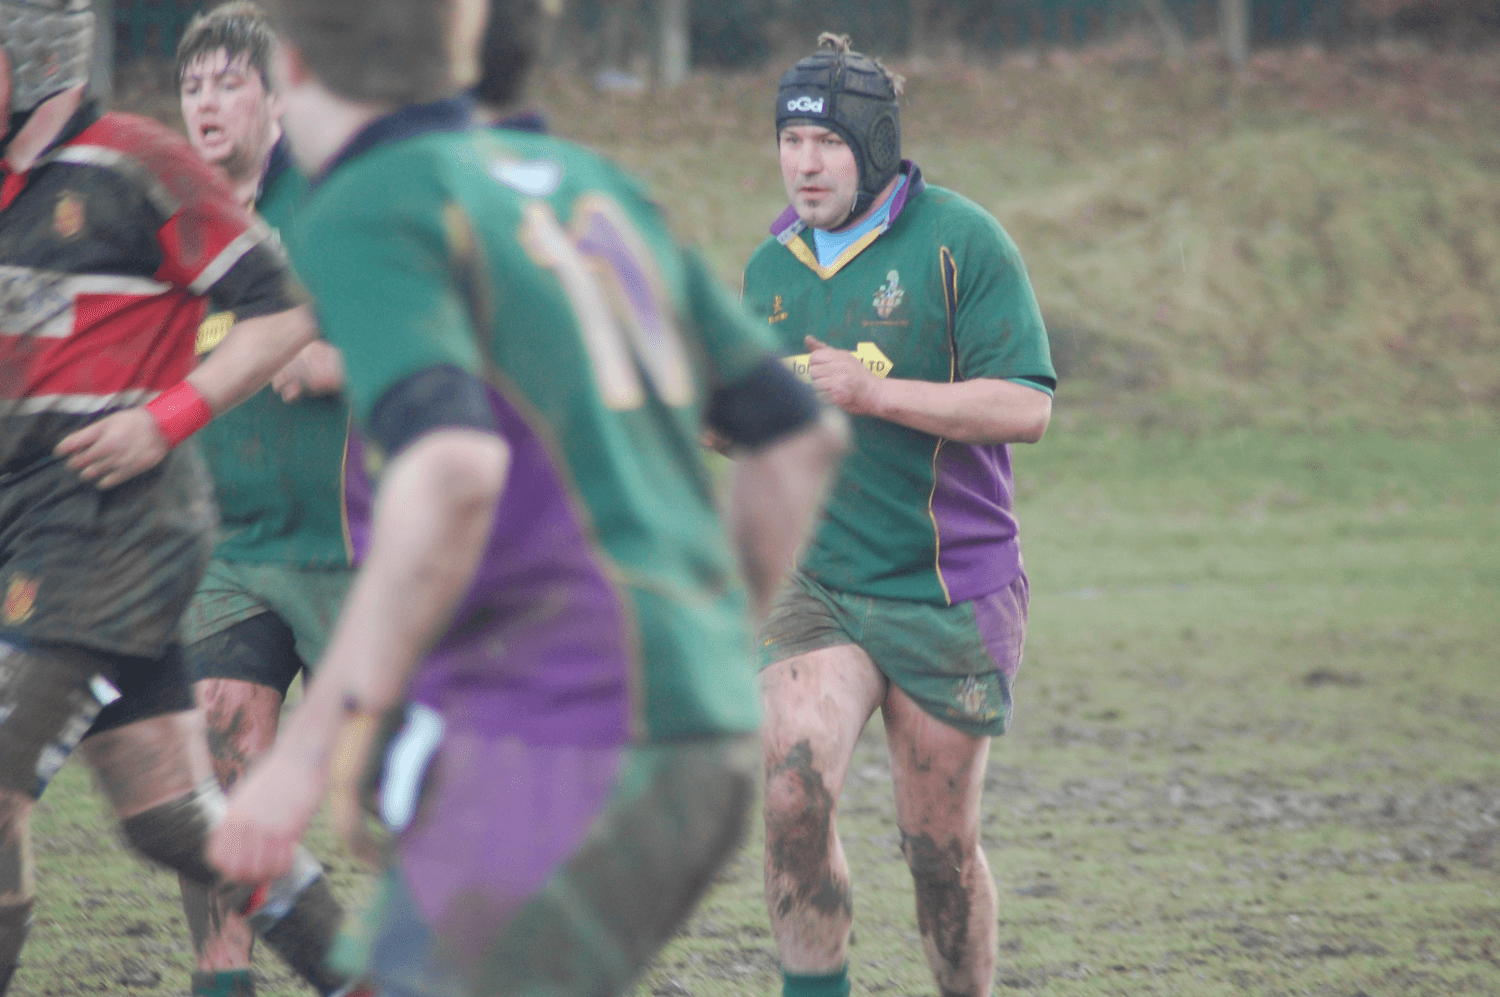 Mark has played grassroots rugby since a young lad, first as blind side flanker and then 'graduating' to the distinguished position of tight head prop in his latter years.